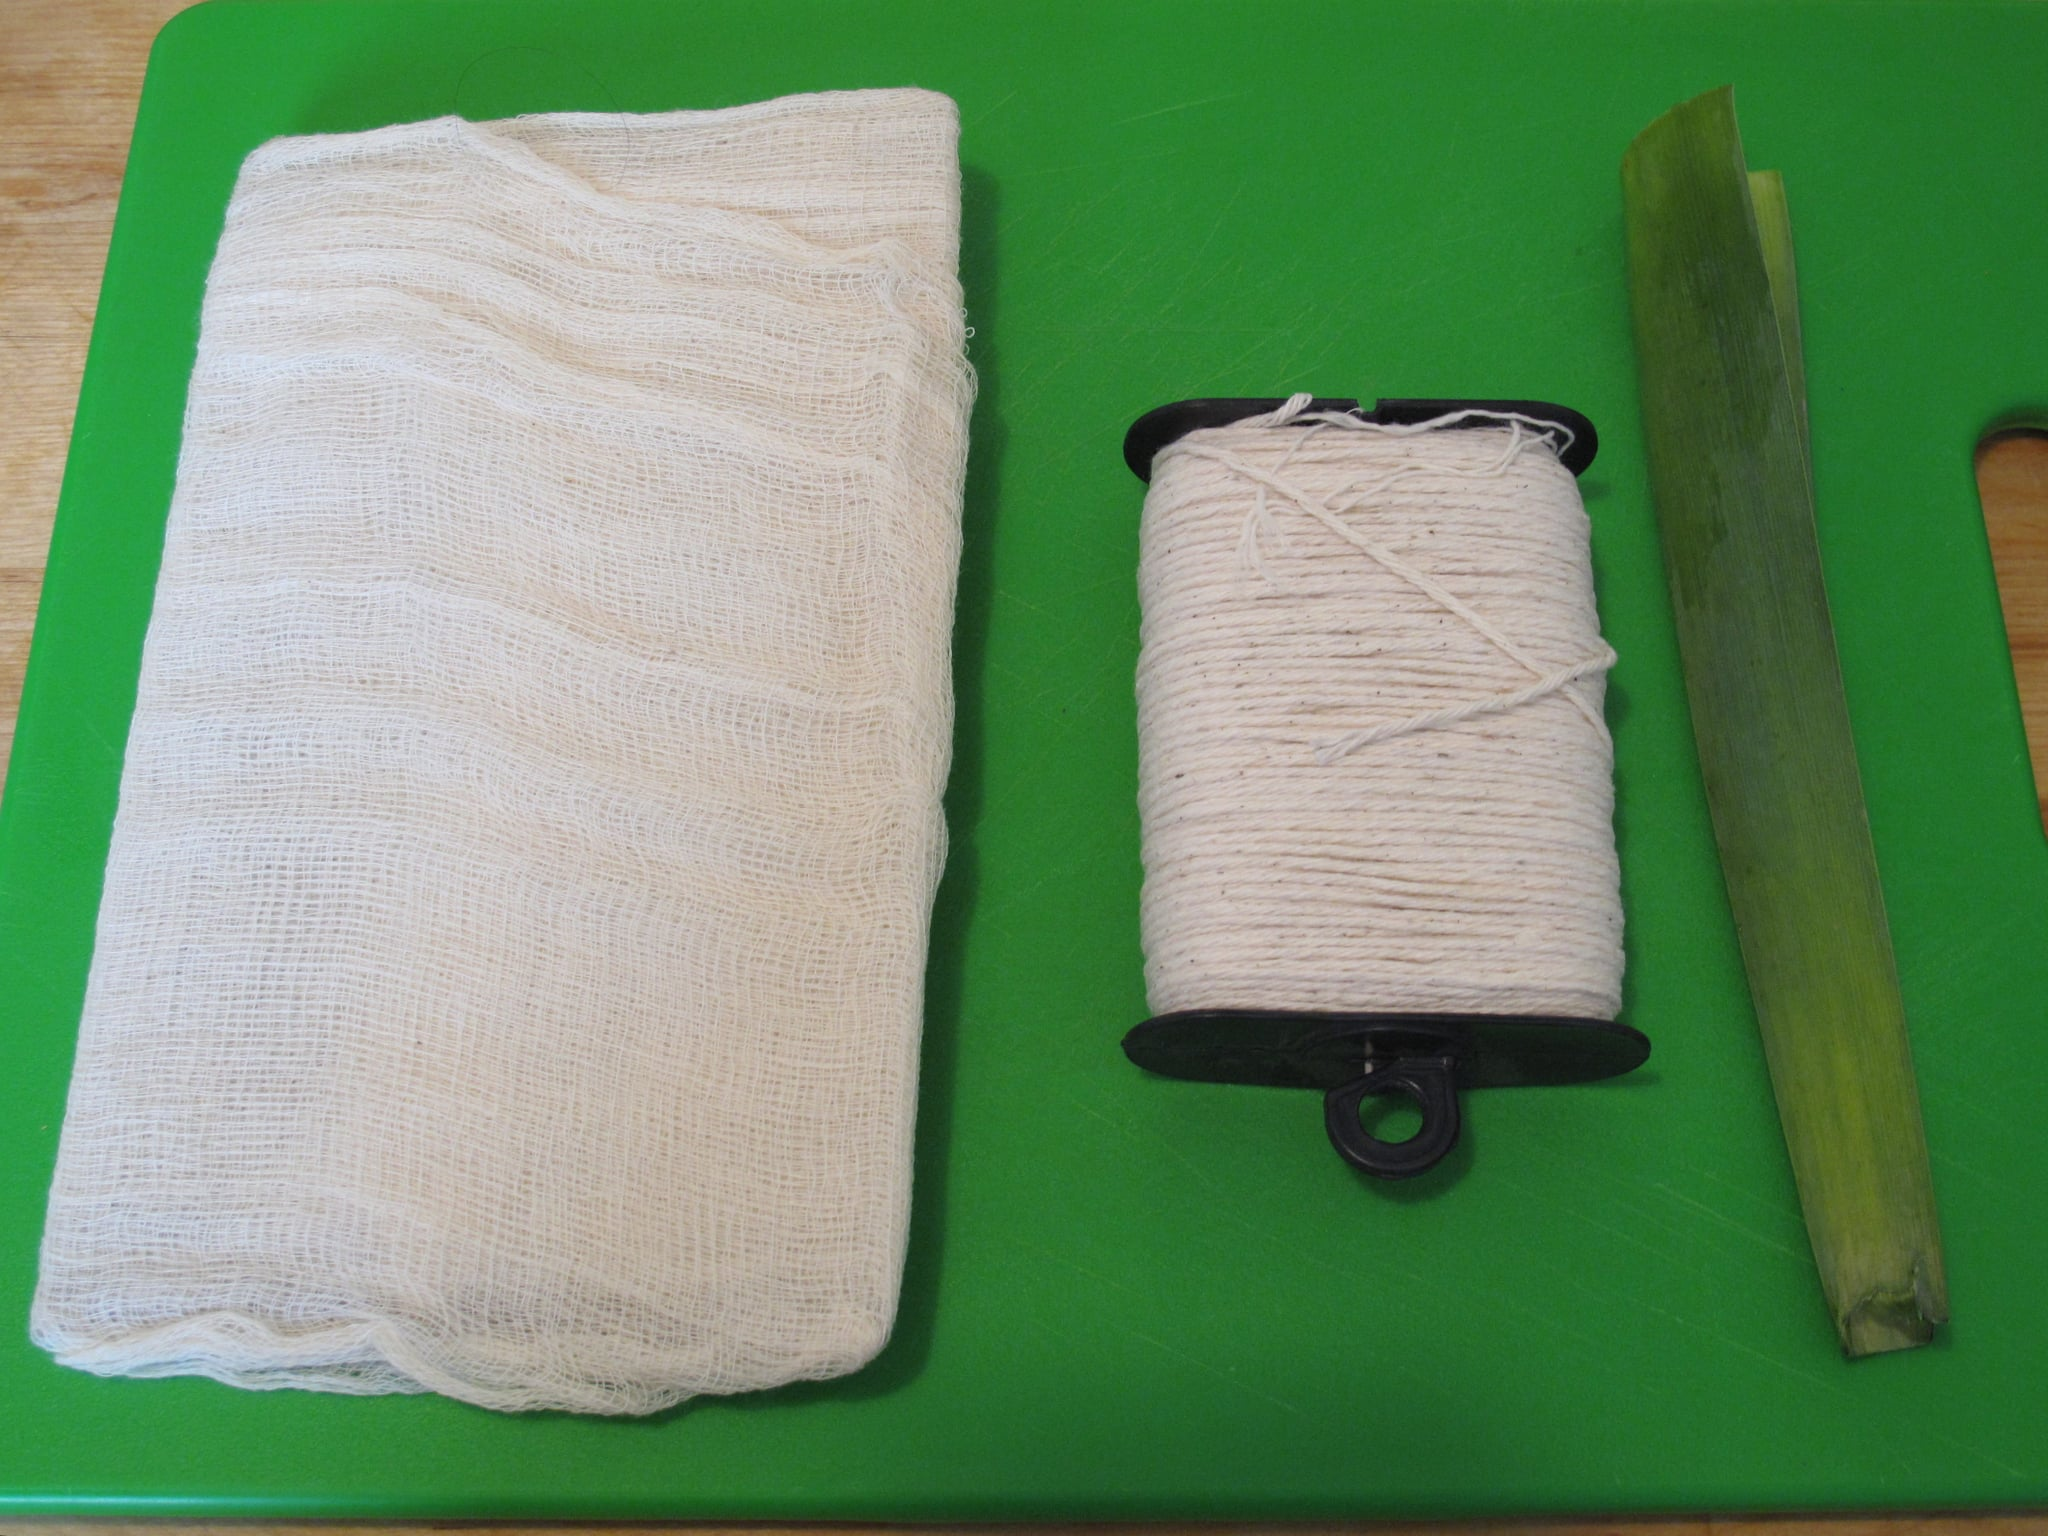 The string will be wrapped around two leek leaves; however, if you have cheesecloth on hand, you can create a pouch with that instead, and secure with kitchen twine.